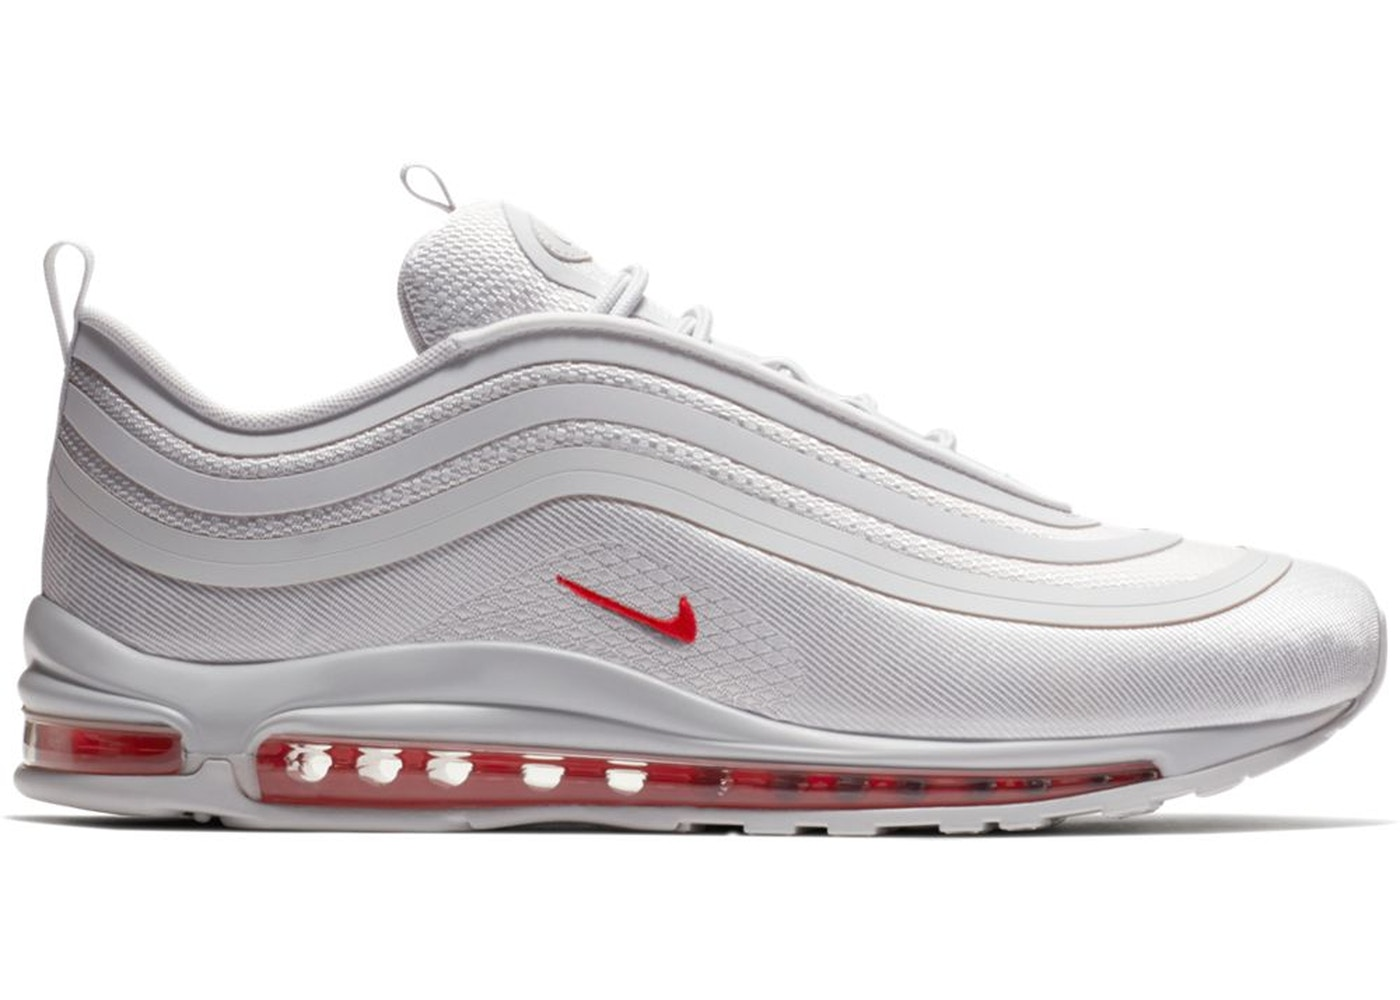 ed251a617271 HypeAnalyzer · Air Max 97 Ultra 17 Vast Grey University Red